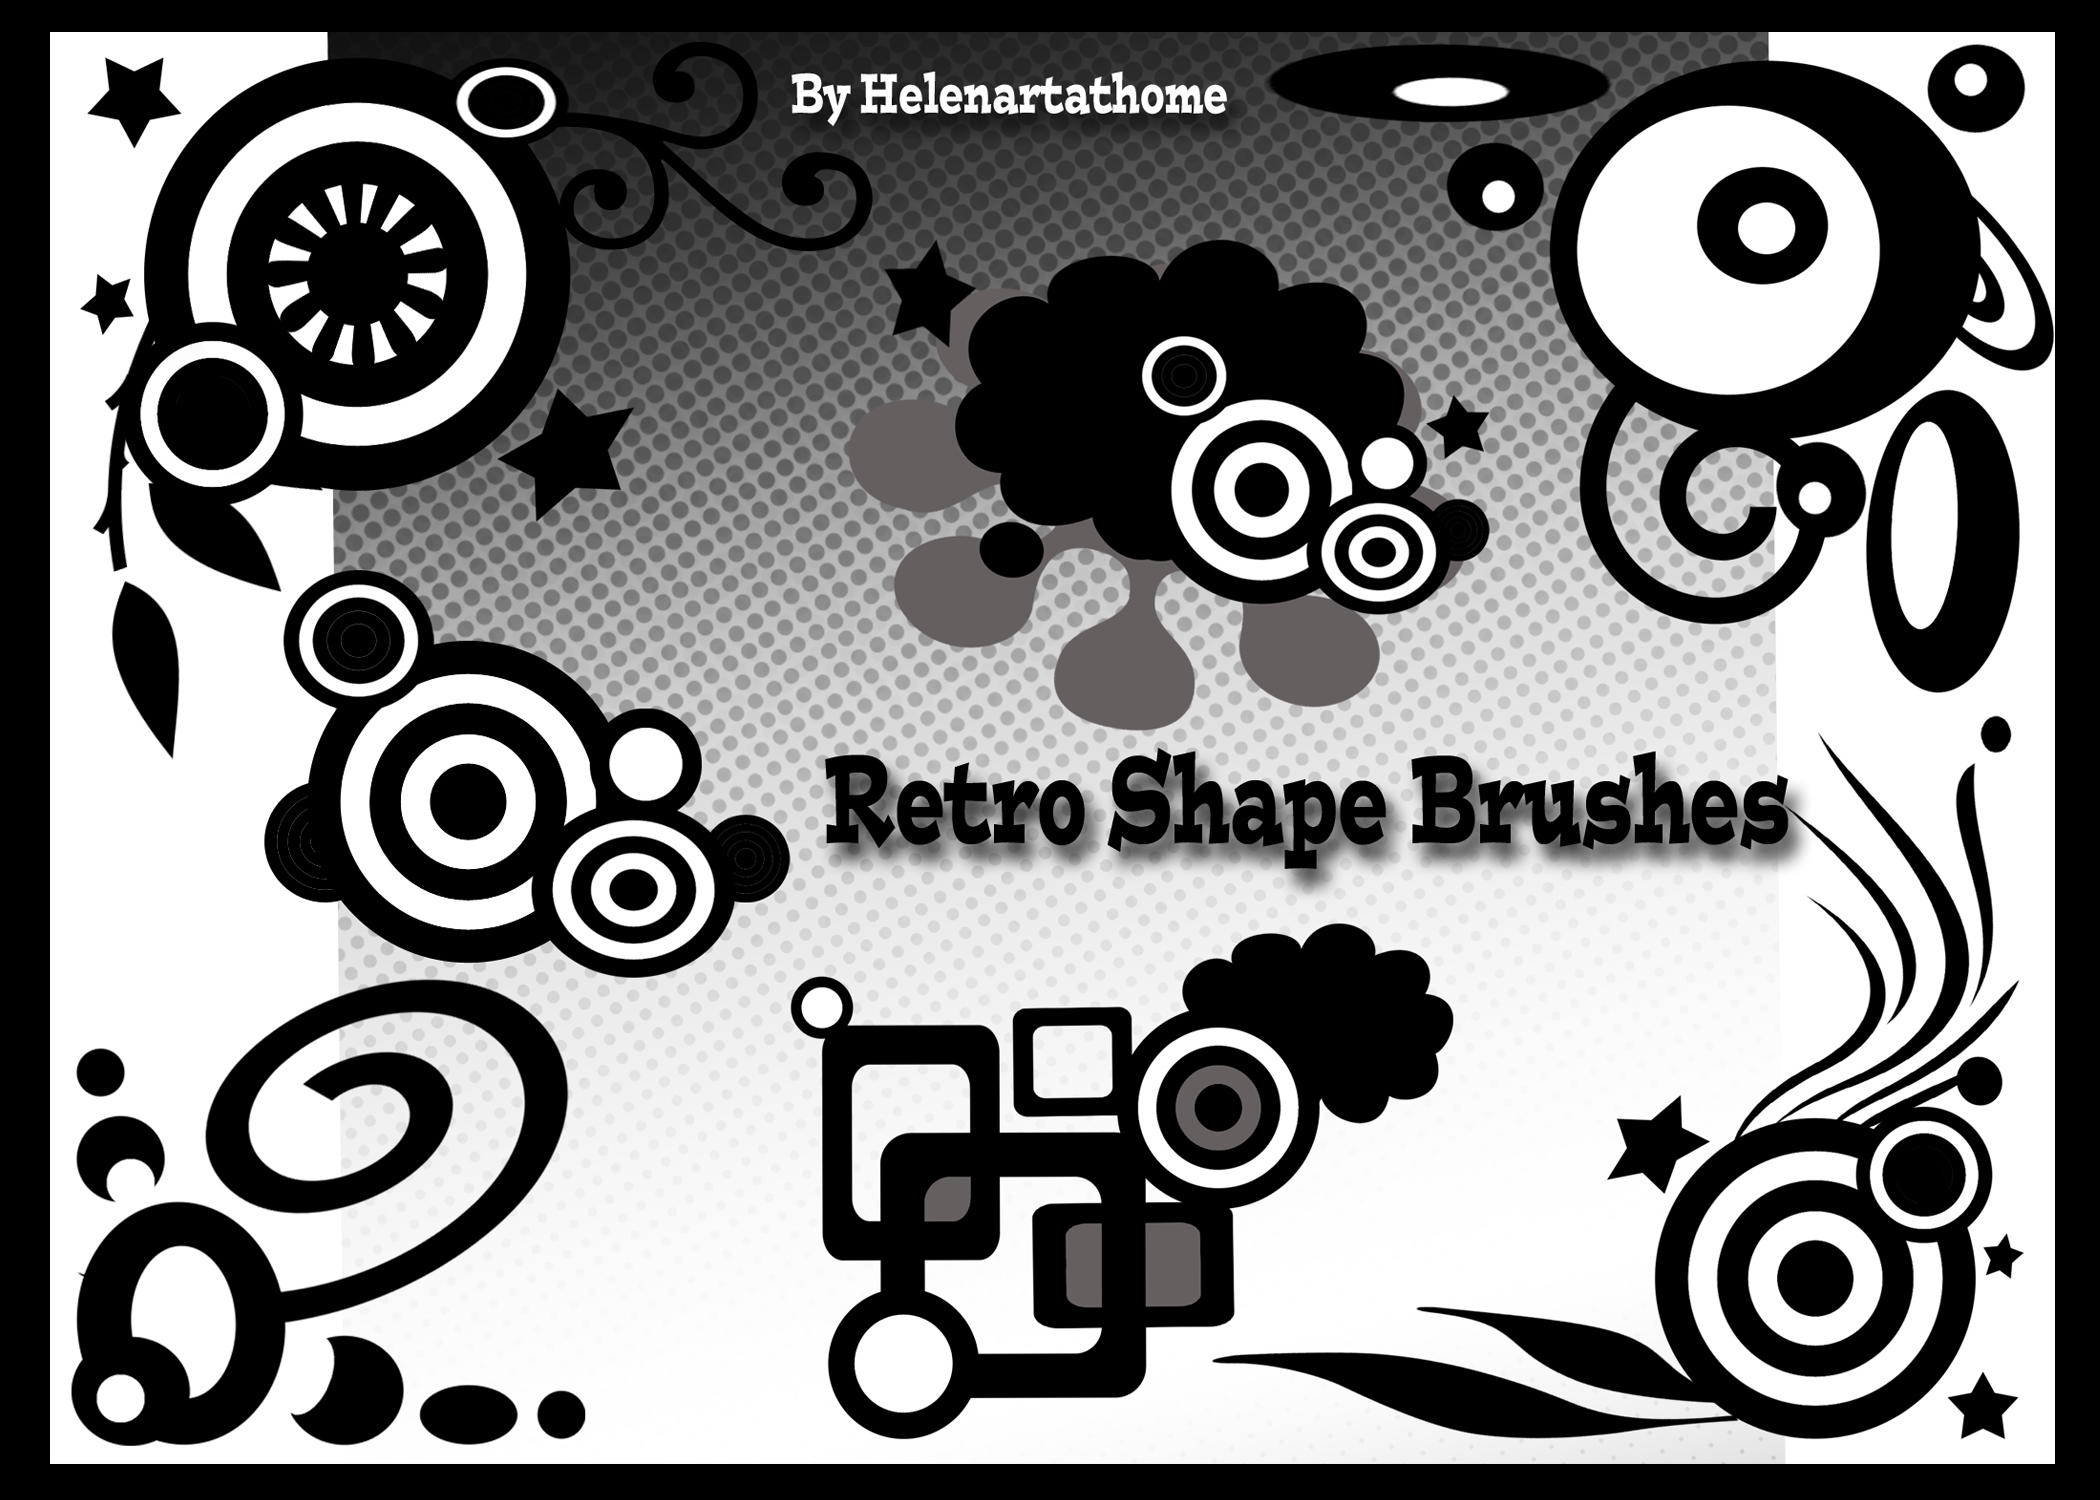 Retro Shape Brushes by Helenartathome